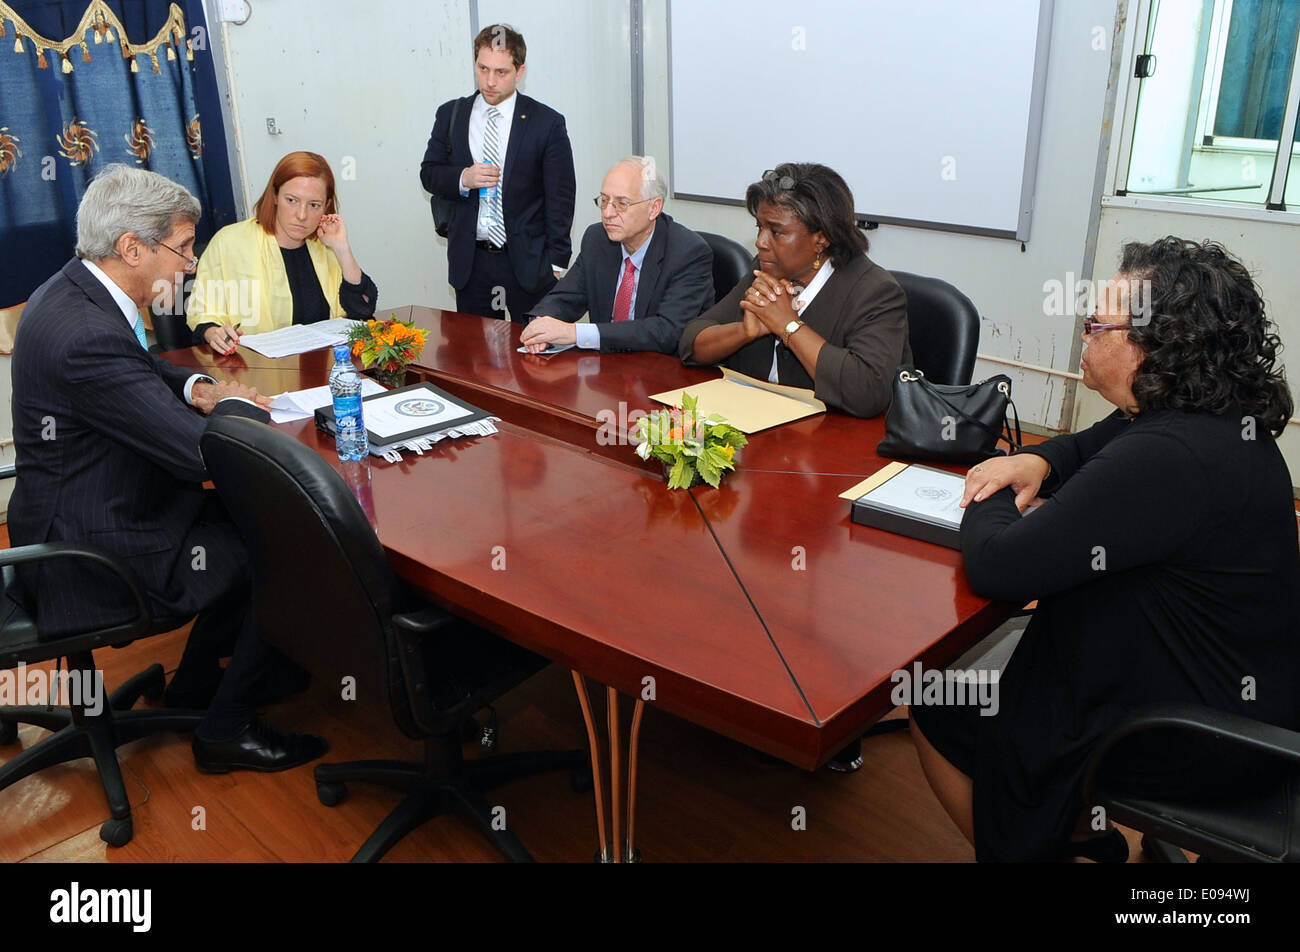 Secretary Kerry Meets With Senior Advisers Before News Conference in Juba - Stock Image